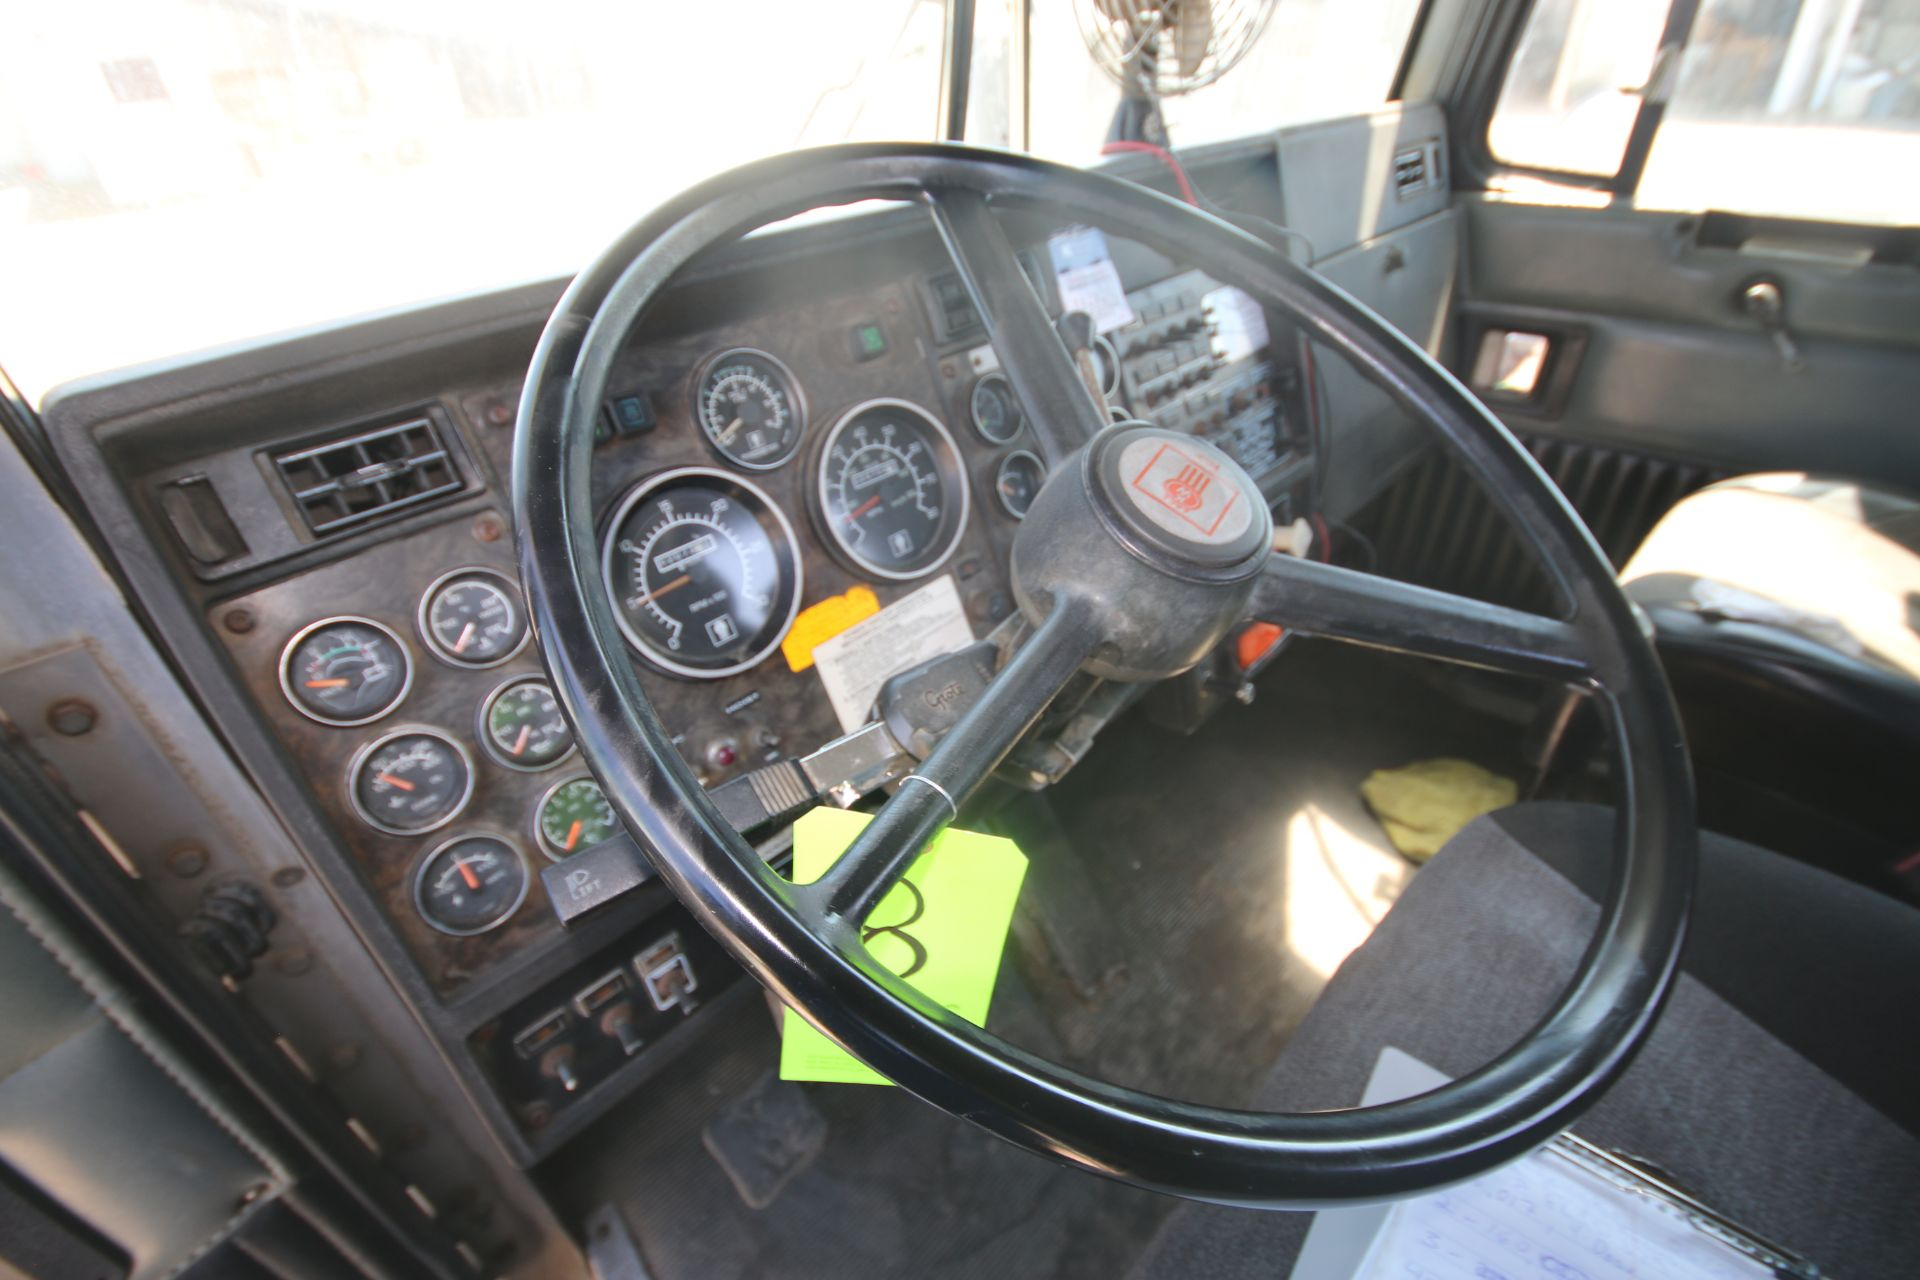 1996 Kenworth 3-Axle Roll-Off Straight Truck, VIN #: 1XKDDB9XOTS687107, with 24,722 Miles, License - Image 18 of 30